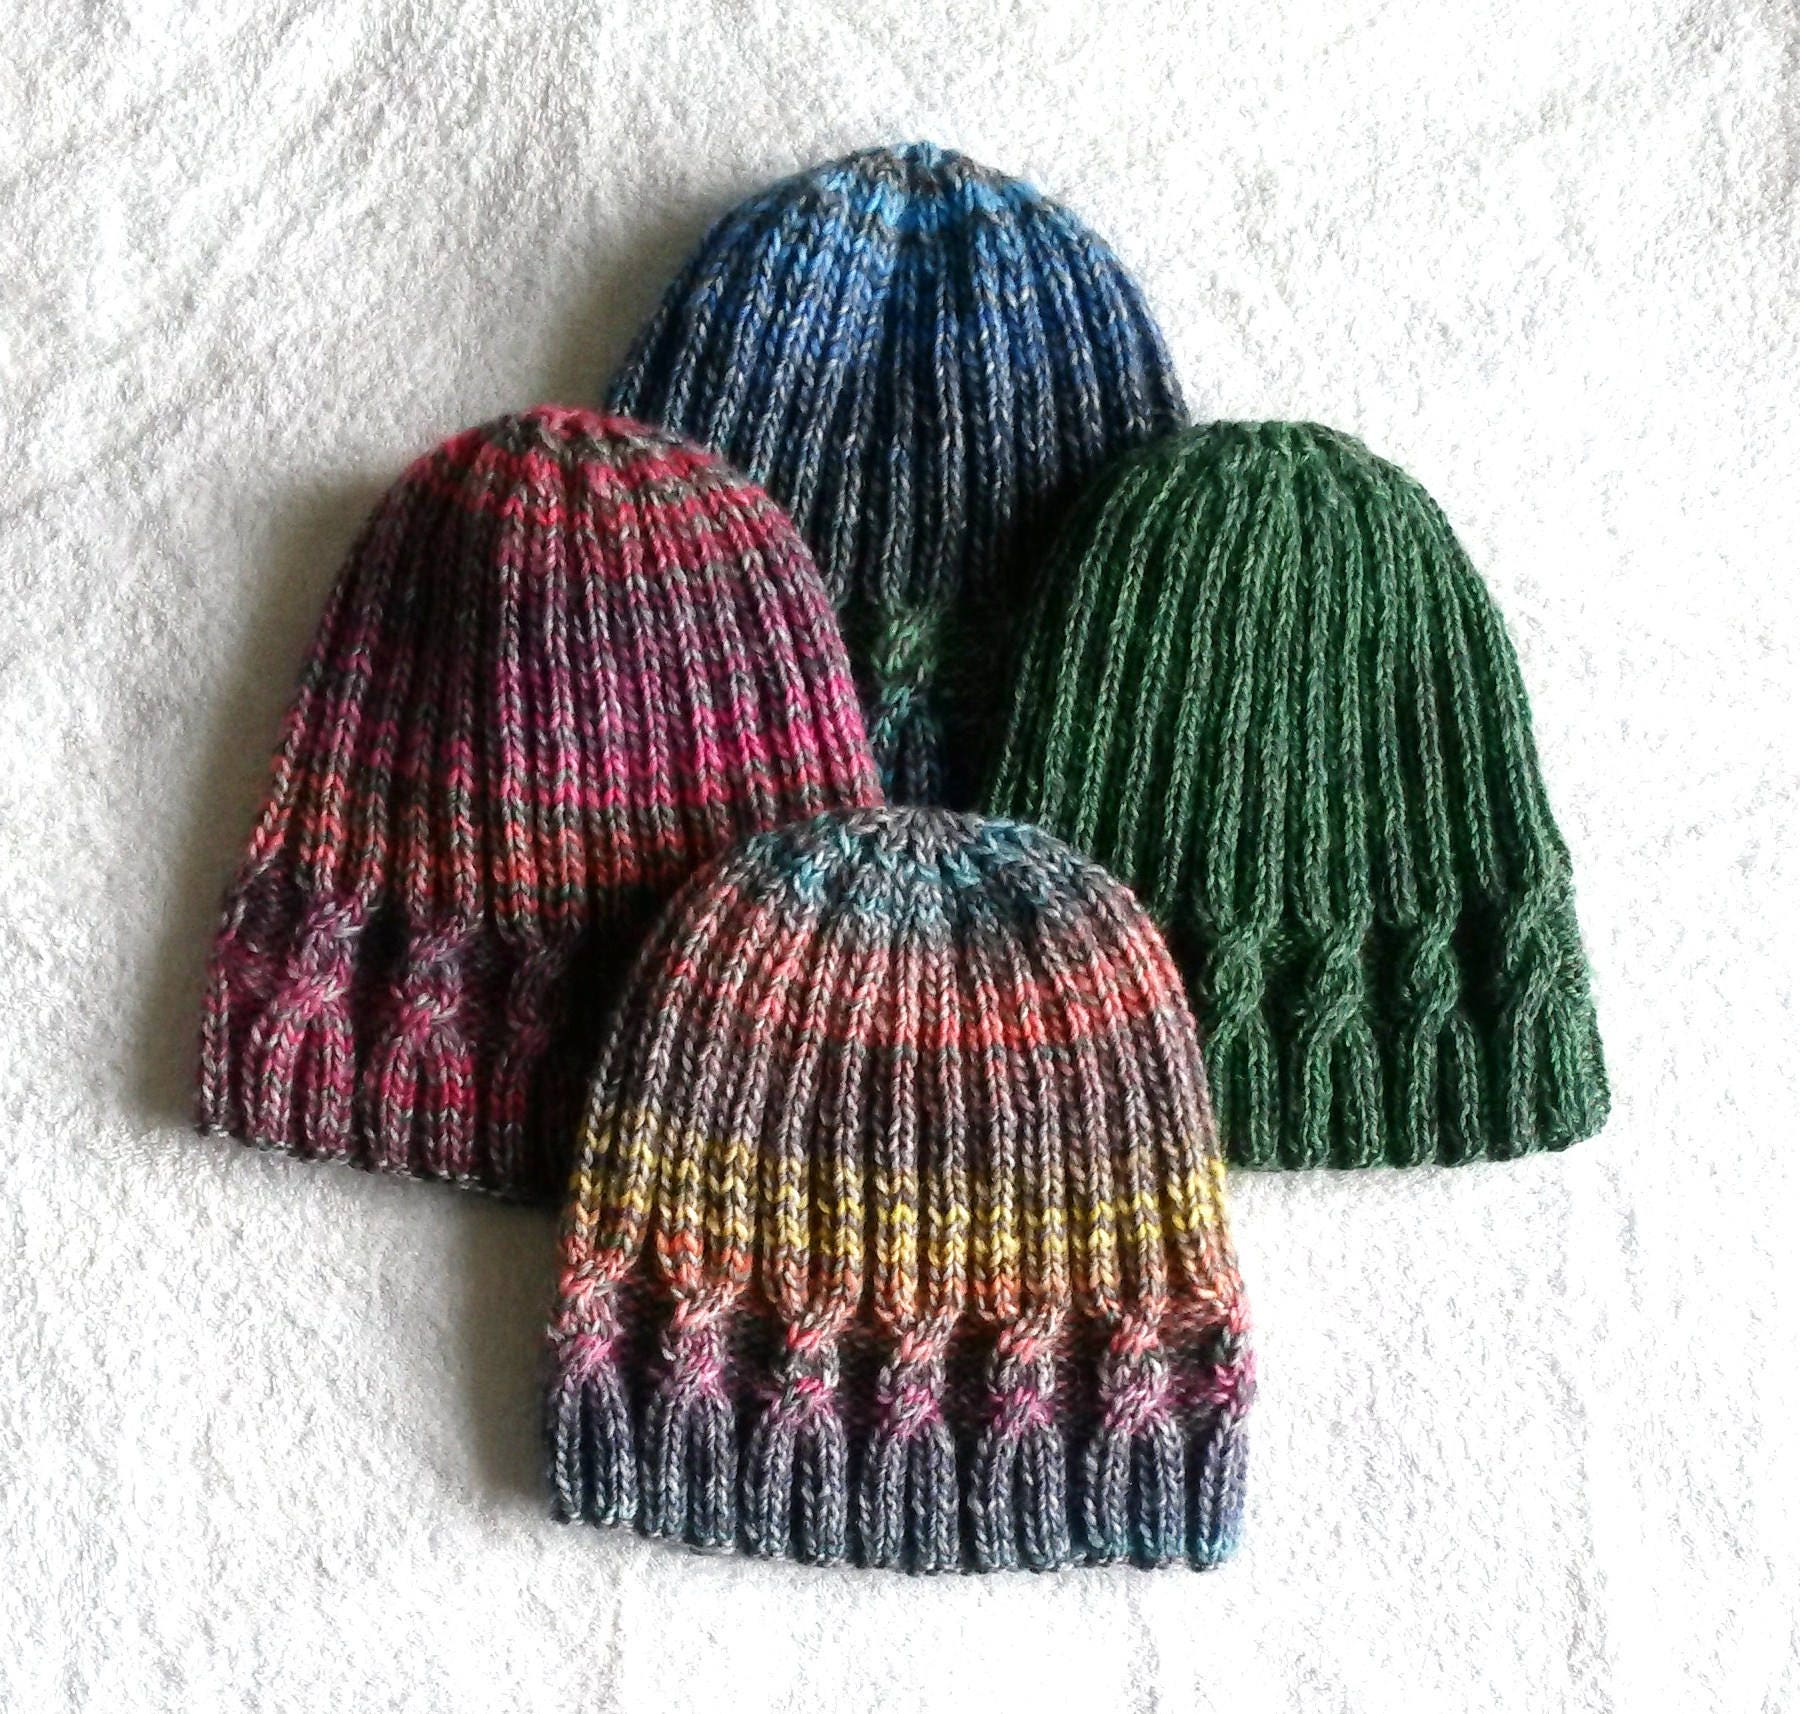 Knitting pattern instant download pdf beanie hat pattern cable knitting pattern instant download pdf beanie hat pattern cable knit hat pattern aran hat pattern simple cable beanie unisex design bankloansurffo Choice Image